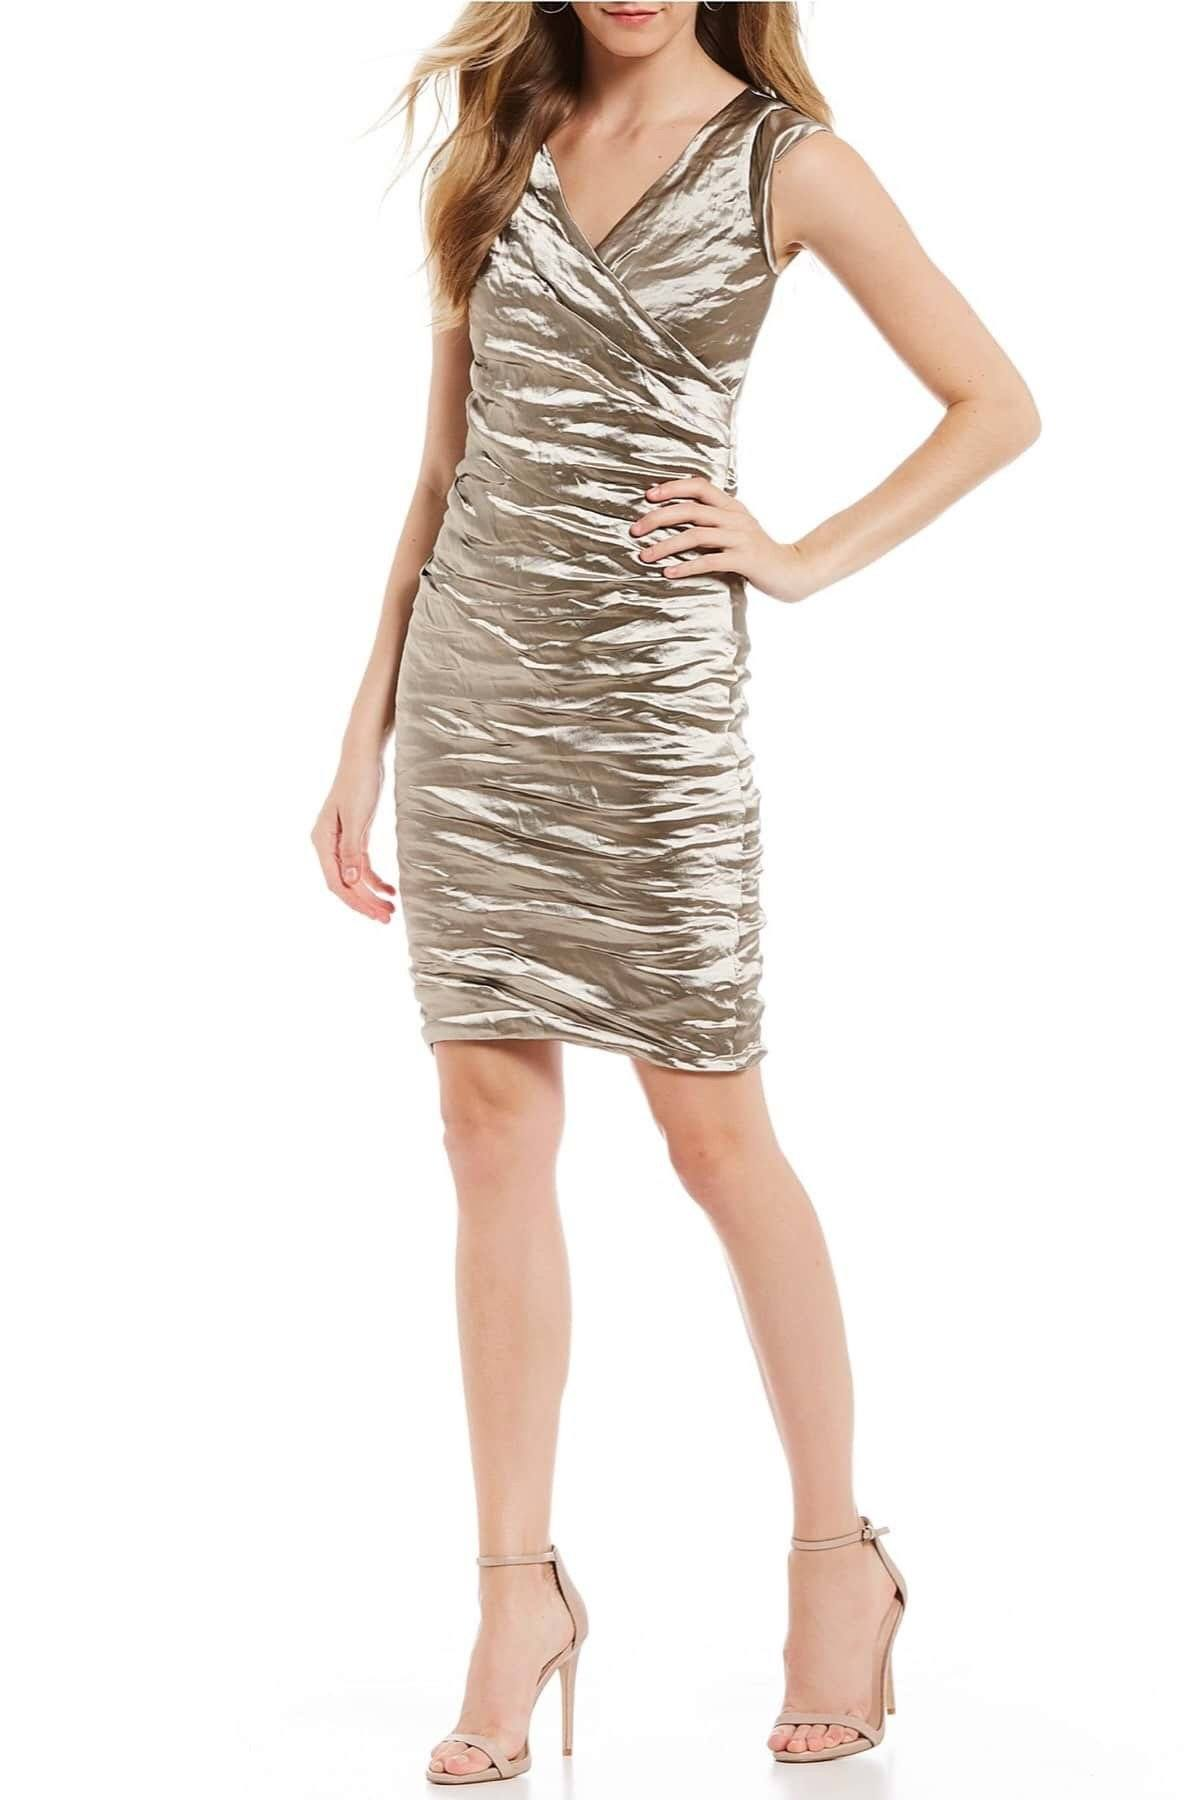 Dresses - Nicole Miller Beckett Techno Metal Dress